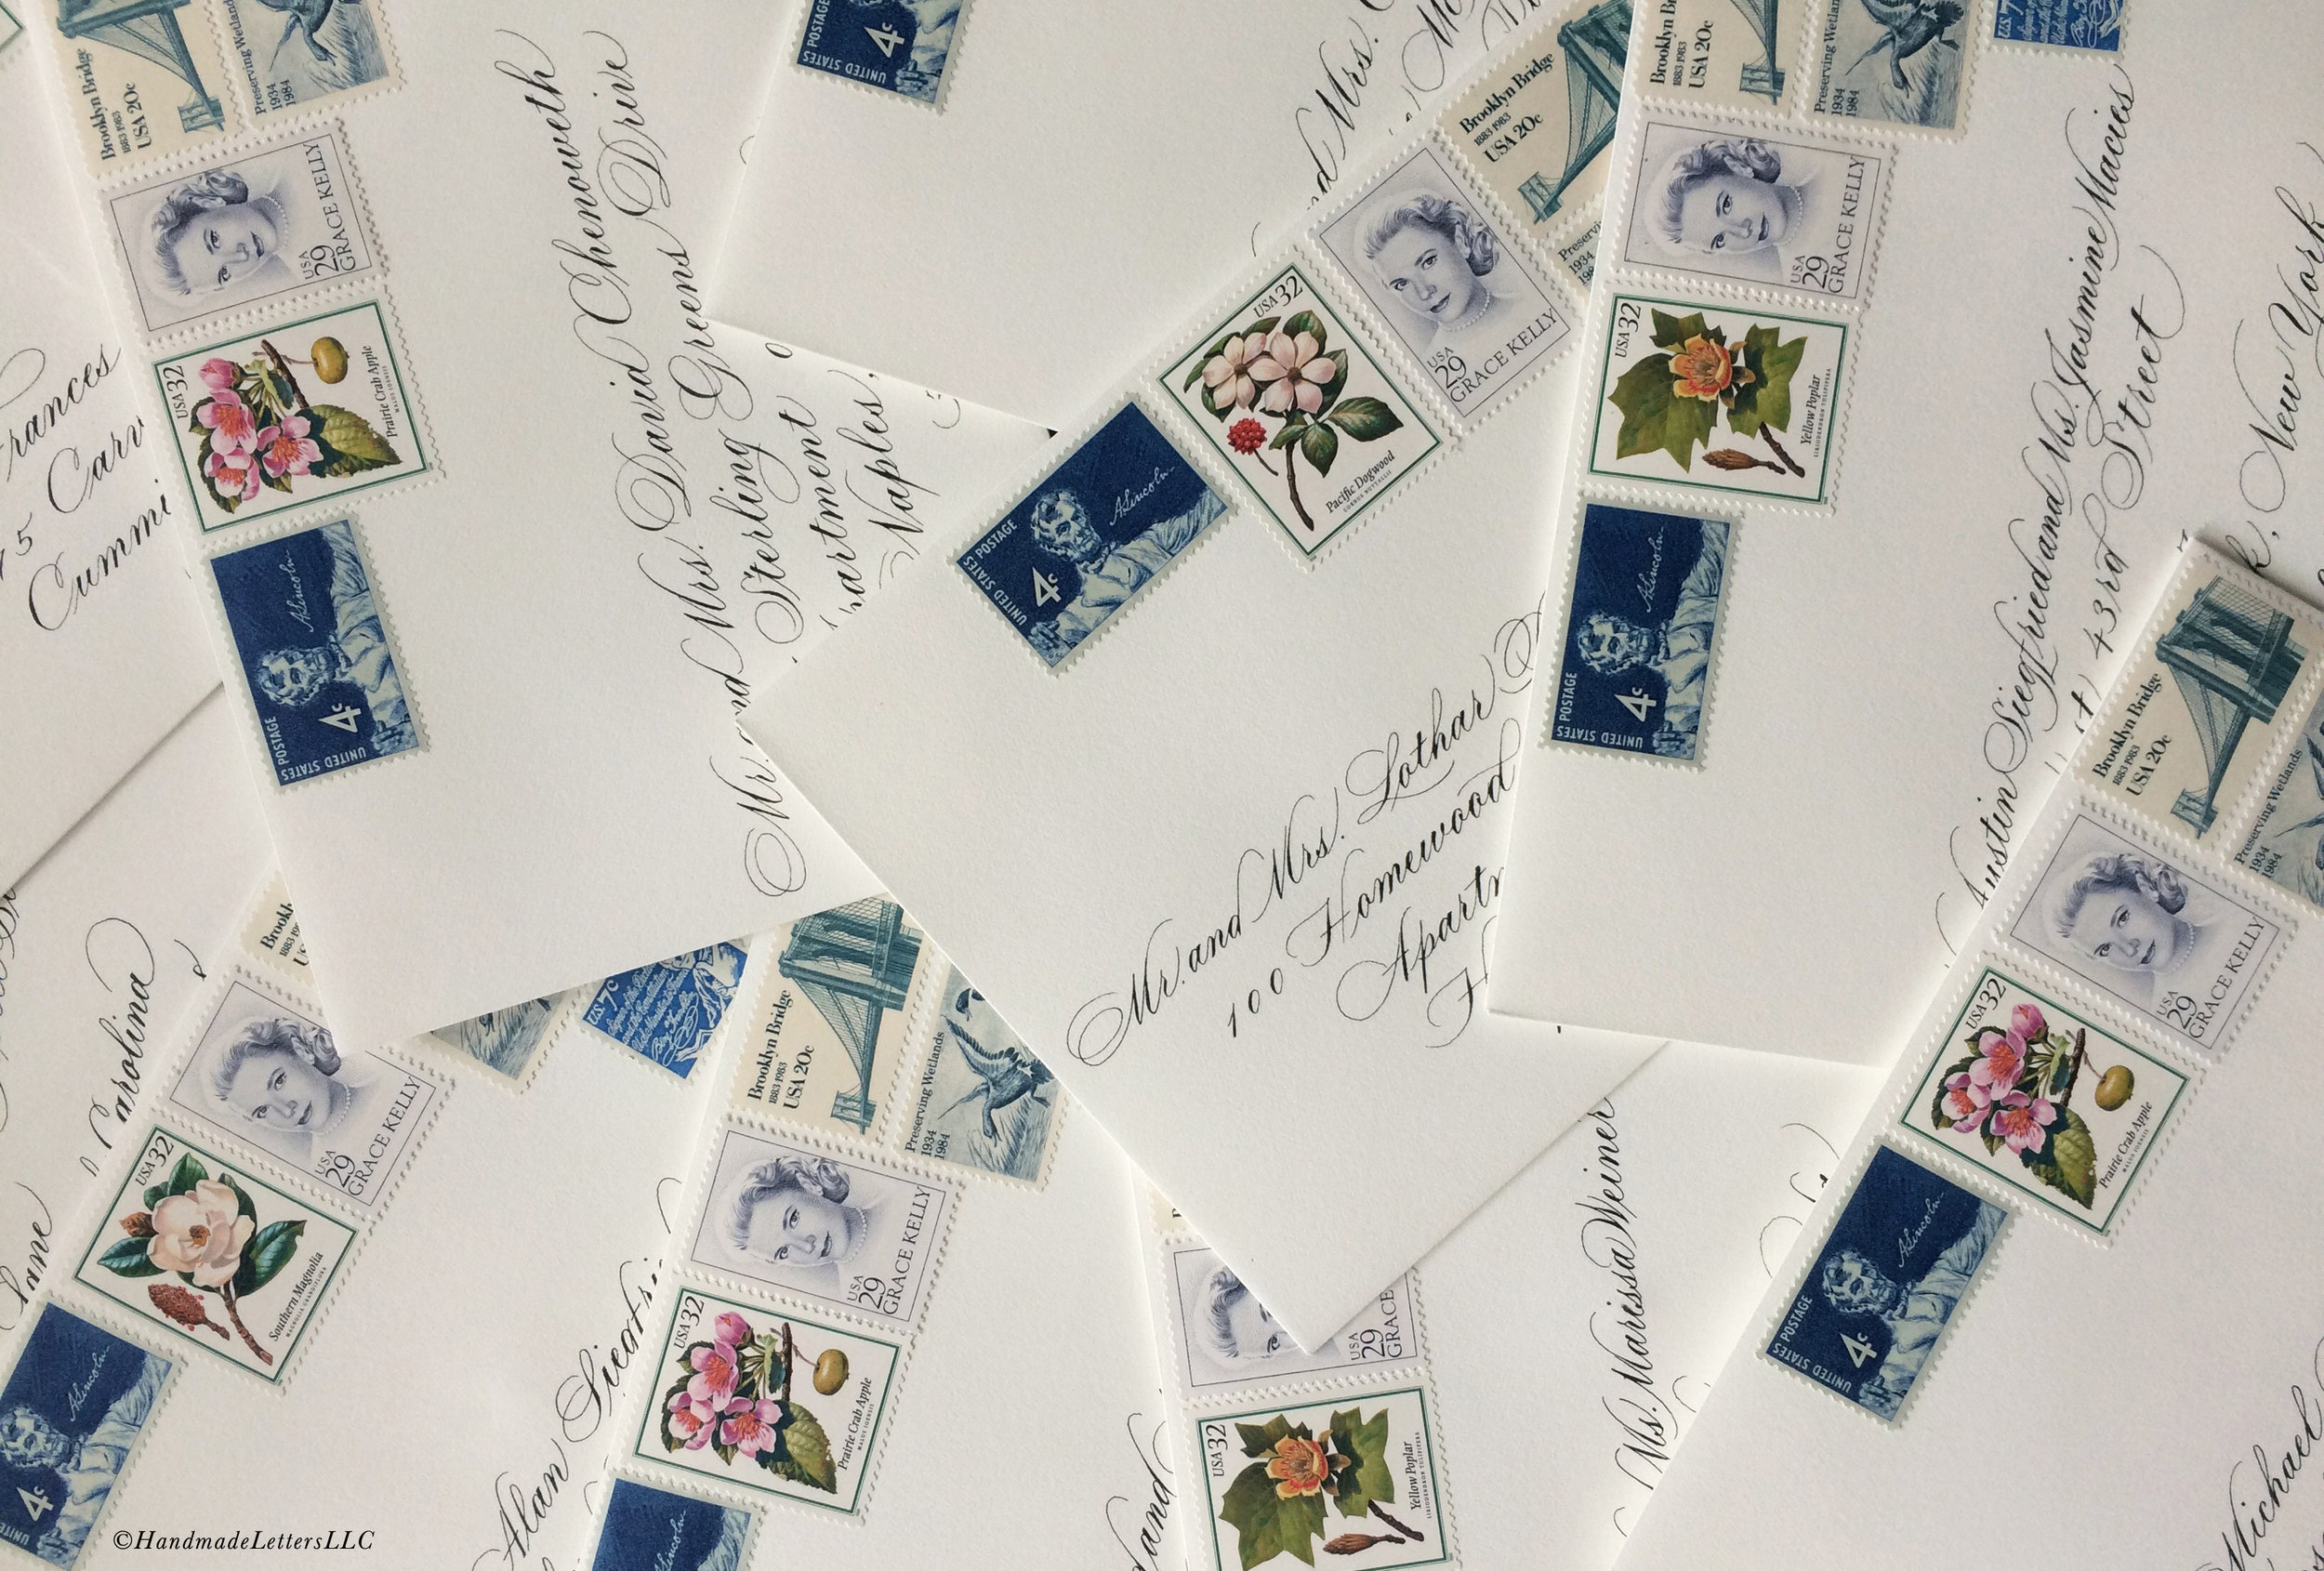 Handmade Letters - Wedding Envelopes with Vintage Stamps